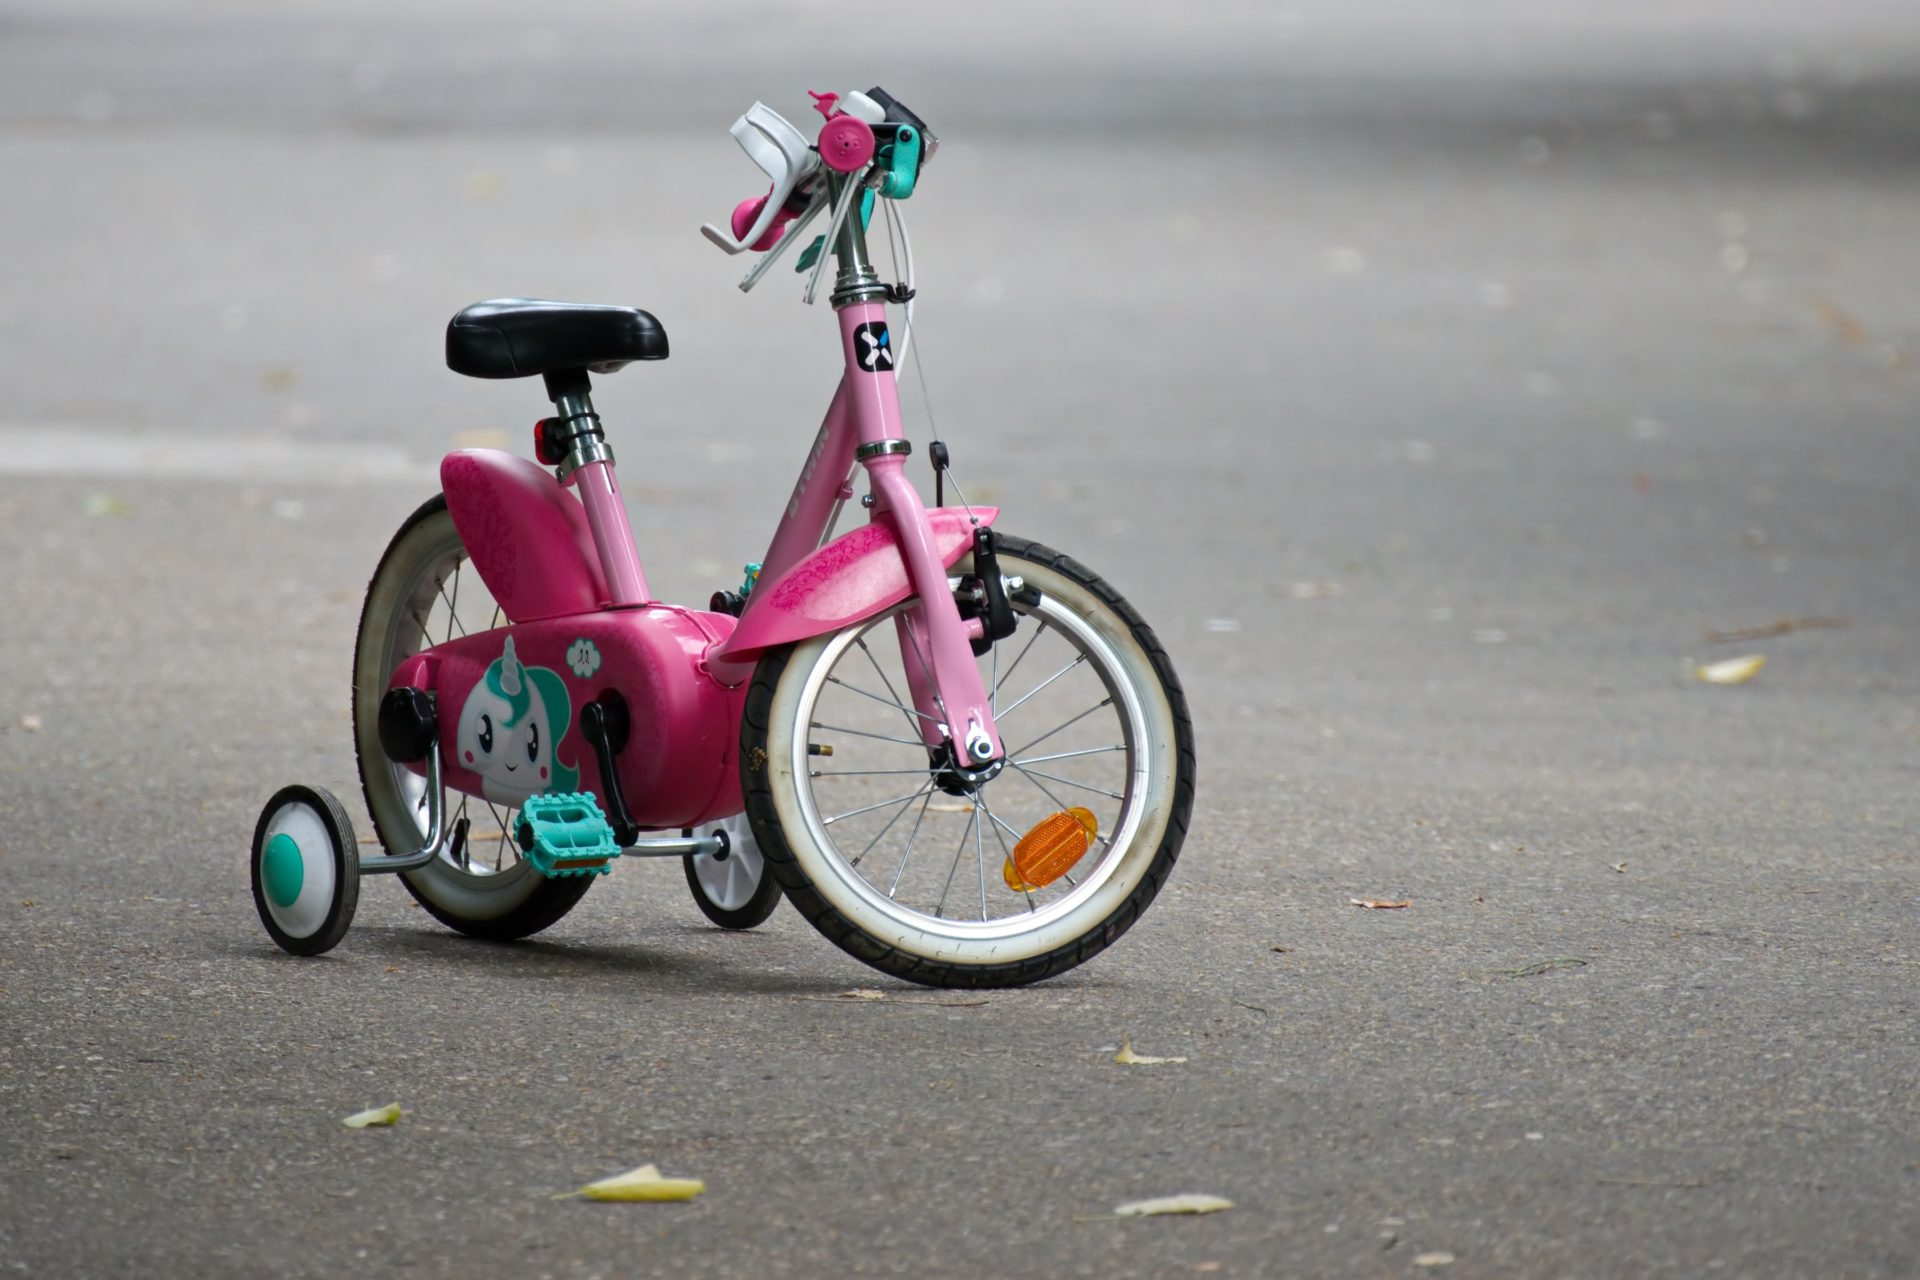 Pink Bike With Training Wheels On Gray Pave Road 1120961